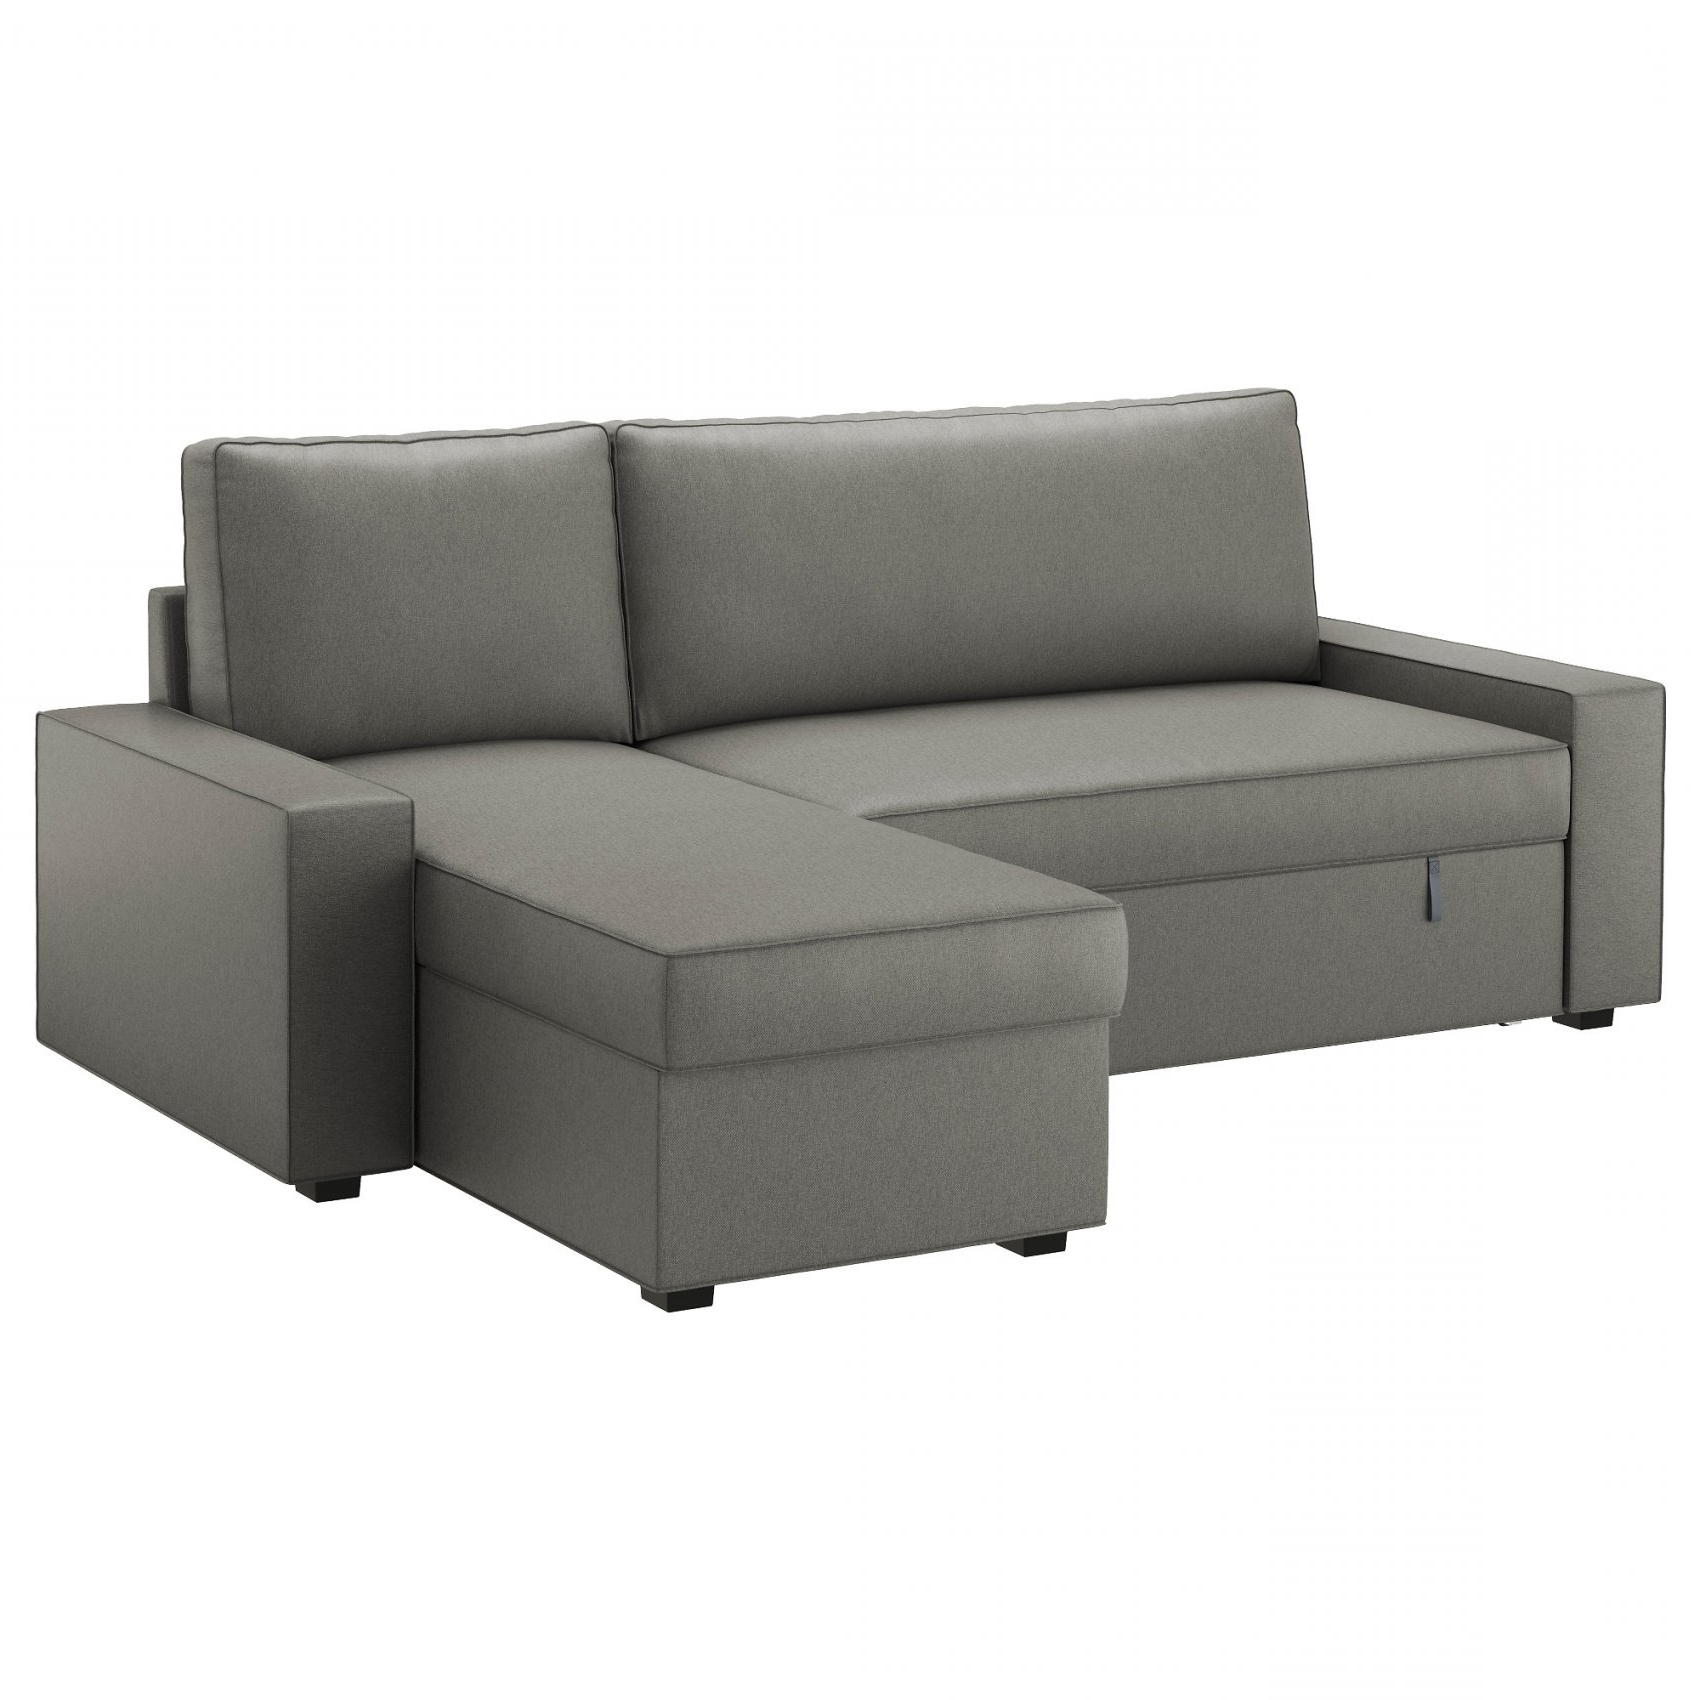 Sofa Beds With Chaise Lounge Intended For Favorite Chaise Lounge Sofa Bed (View 10 of 15)